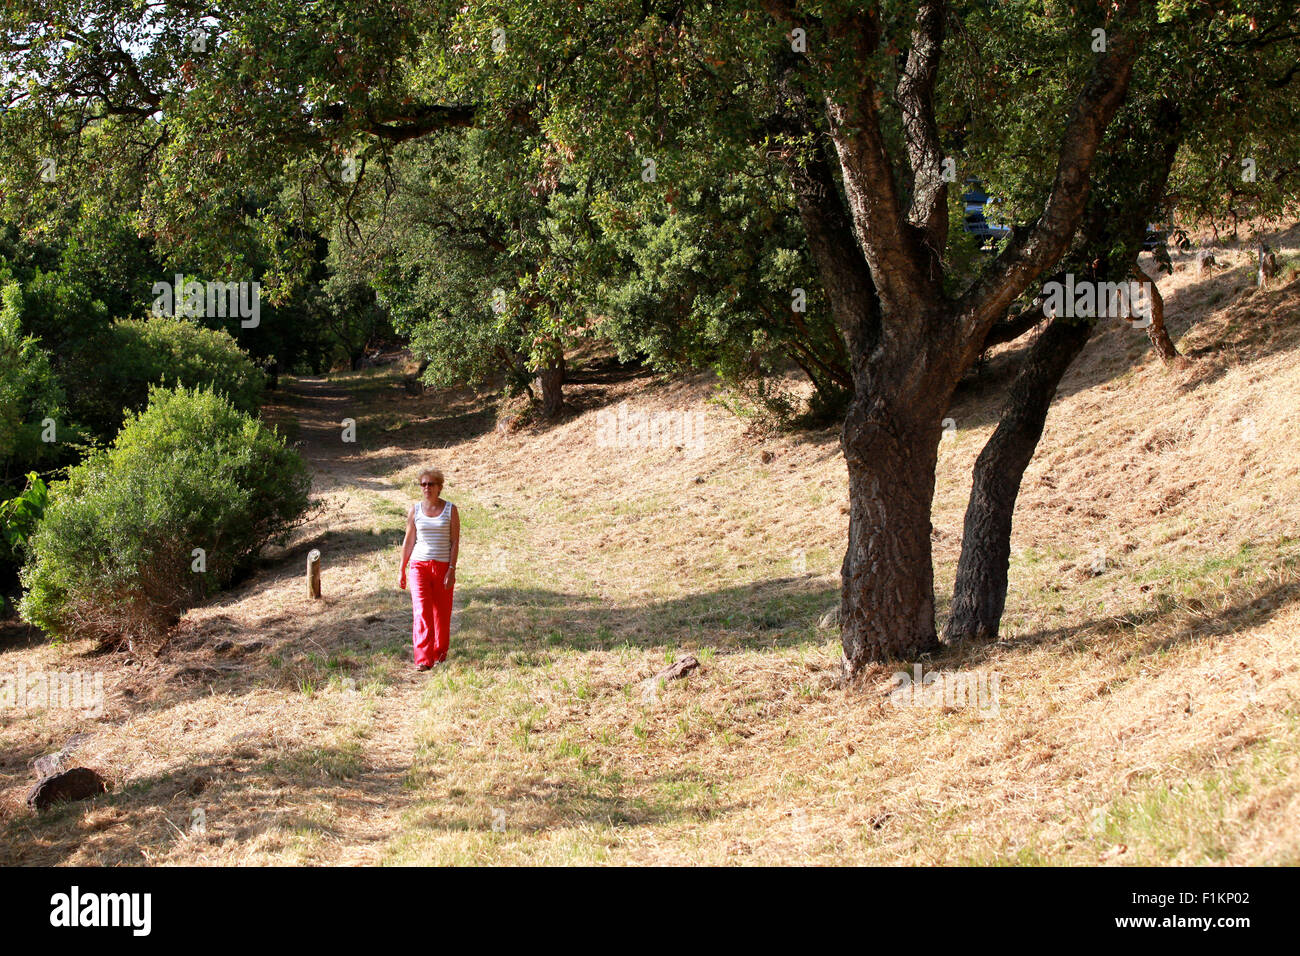 A female walking along a grass track in a french national park area in the south of france, Alpes-Maritimes, on Stock Photo